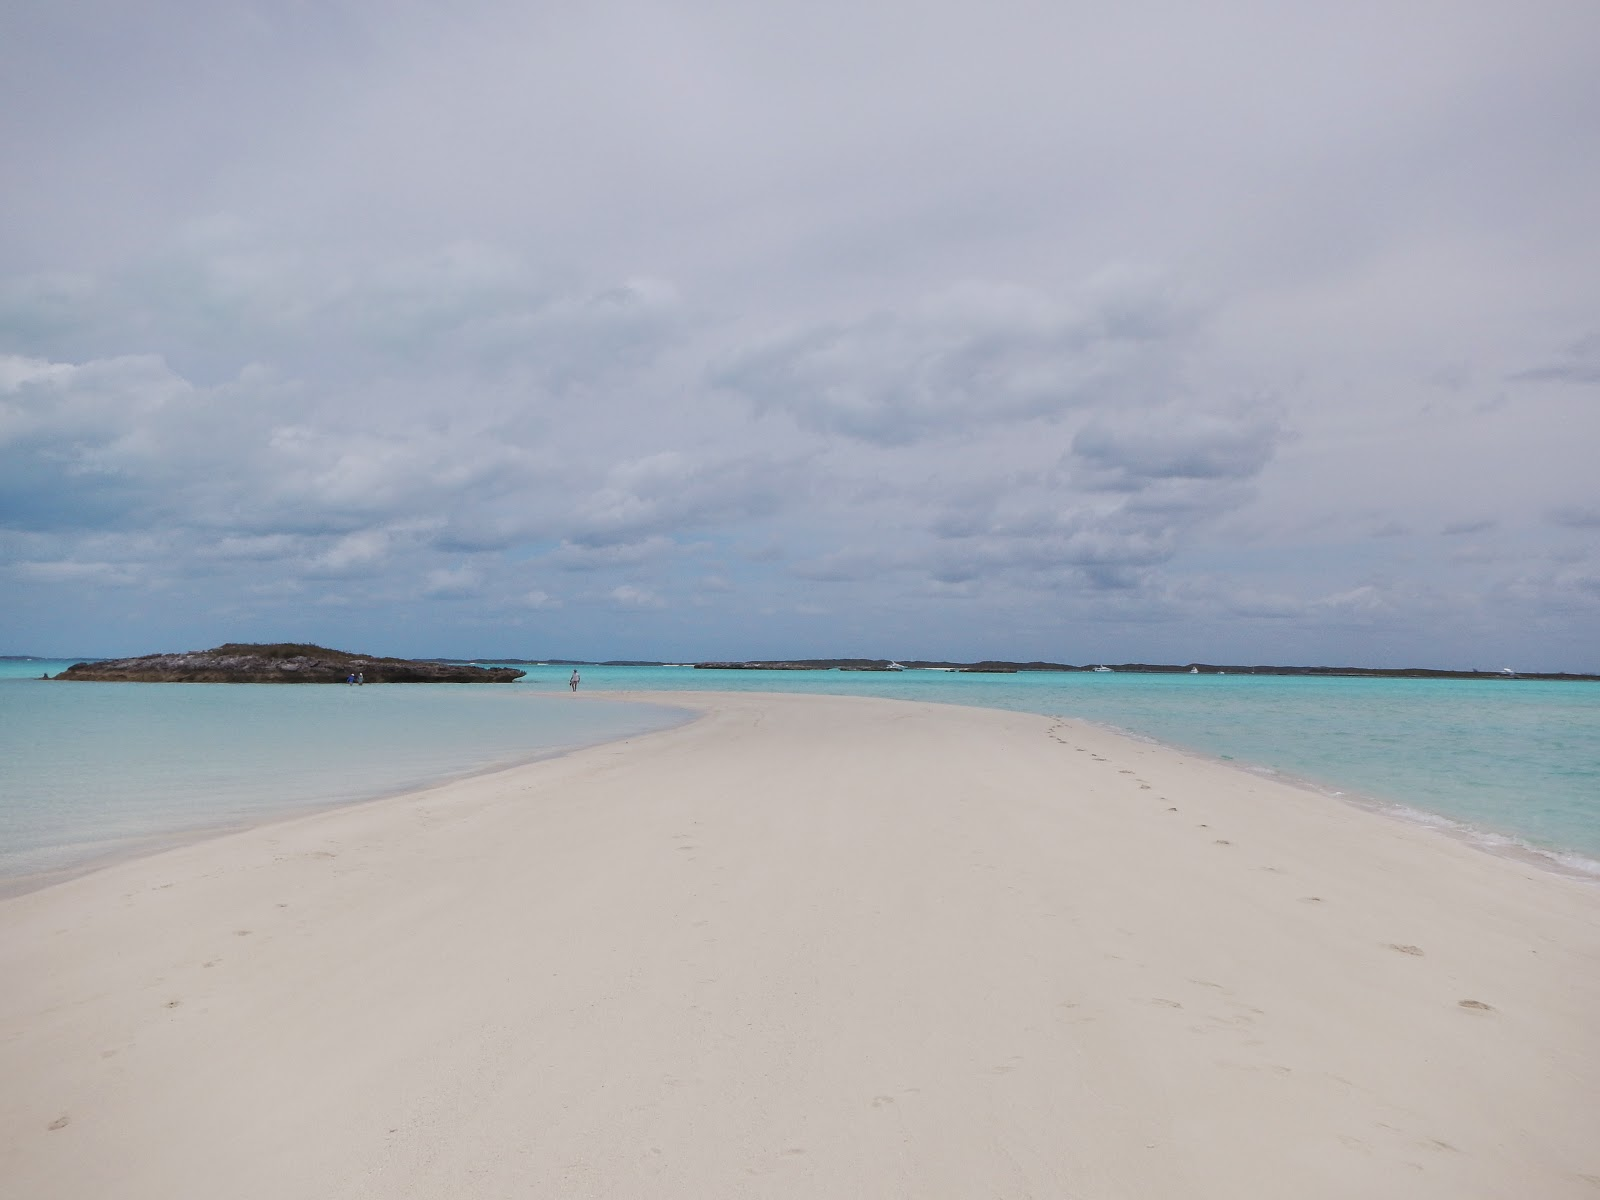 In Search of Sunshine, Part III: Flying the Bahamas | Taking